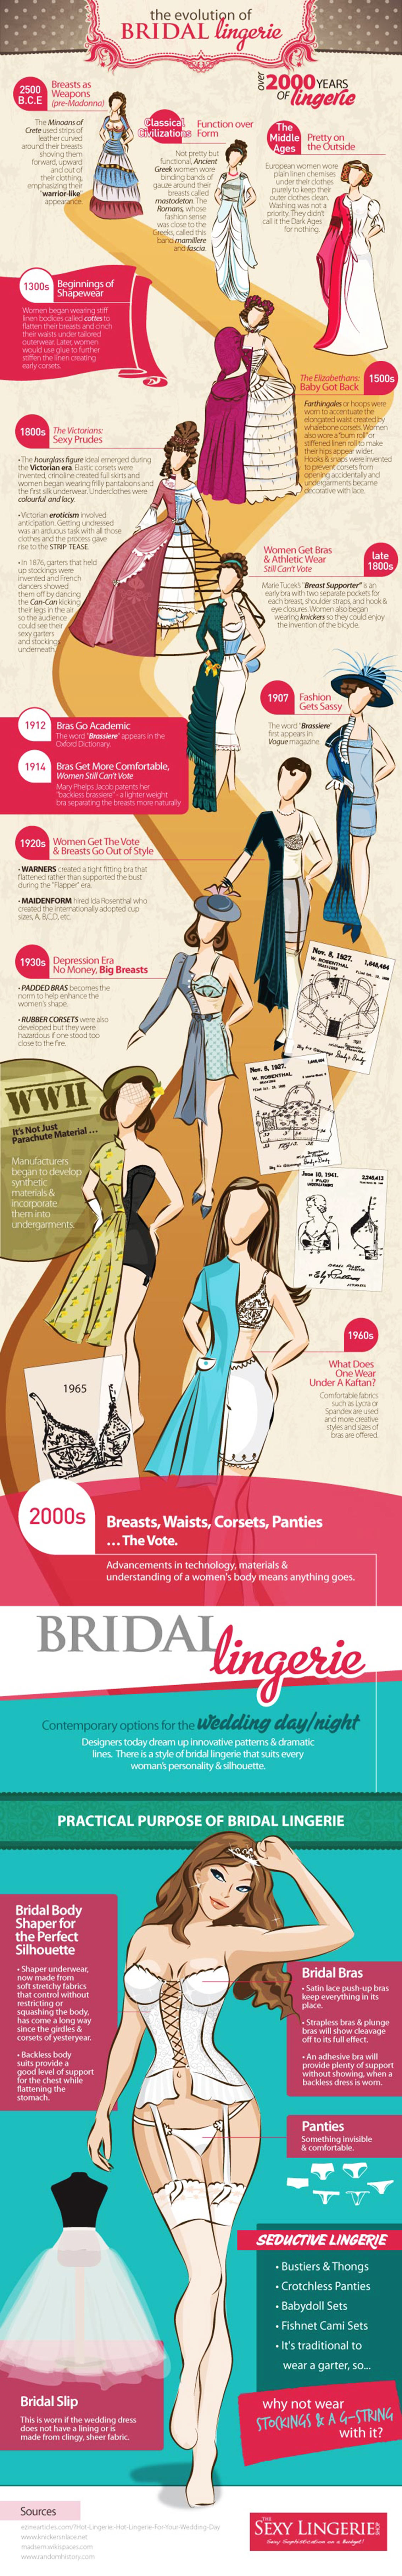 The Evolution of Bridal Lingerie Infographic